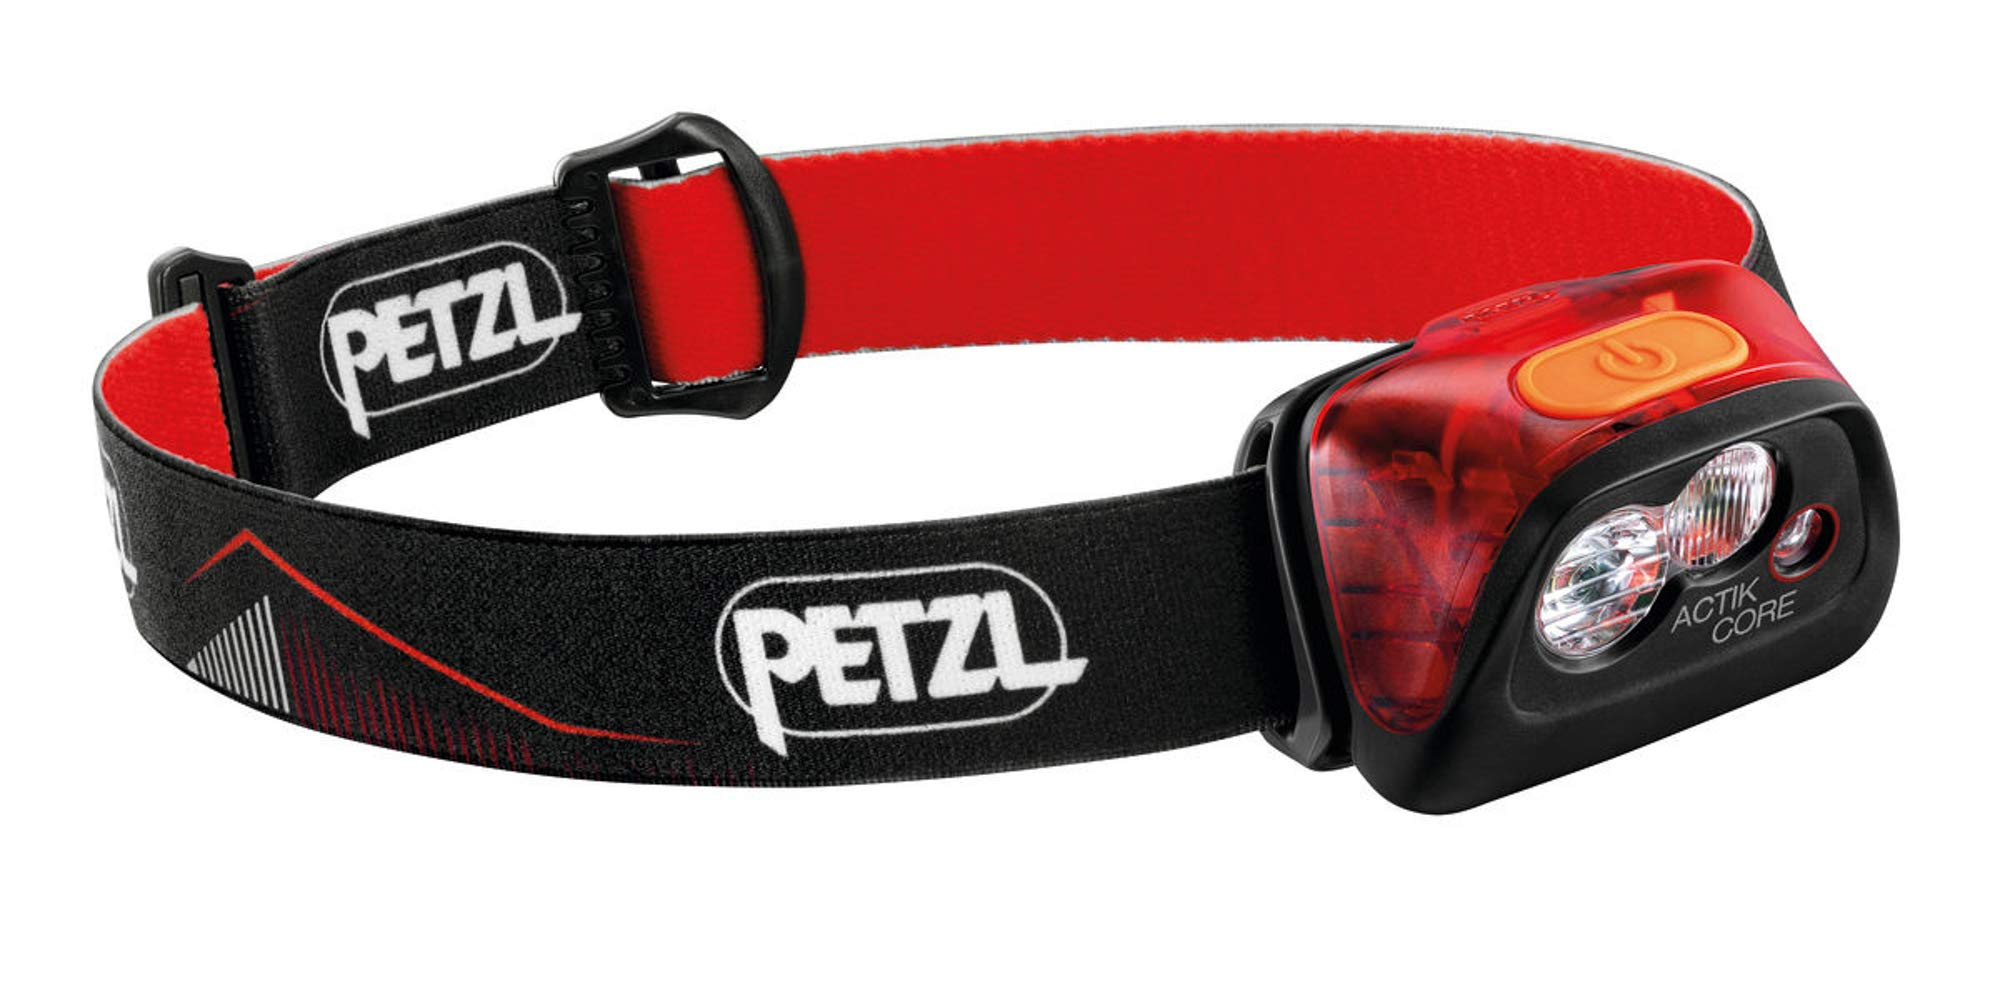 PETZL, ACTIK CORE Headlamp, 450 Lumens, Rechargeable, with CORE Battery, Black